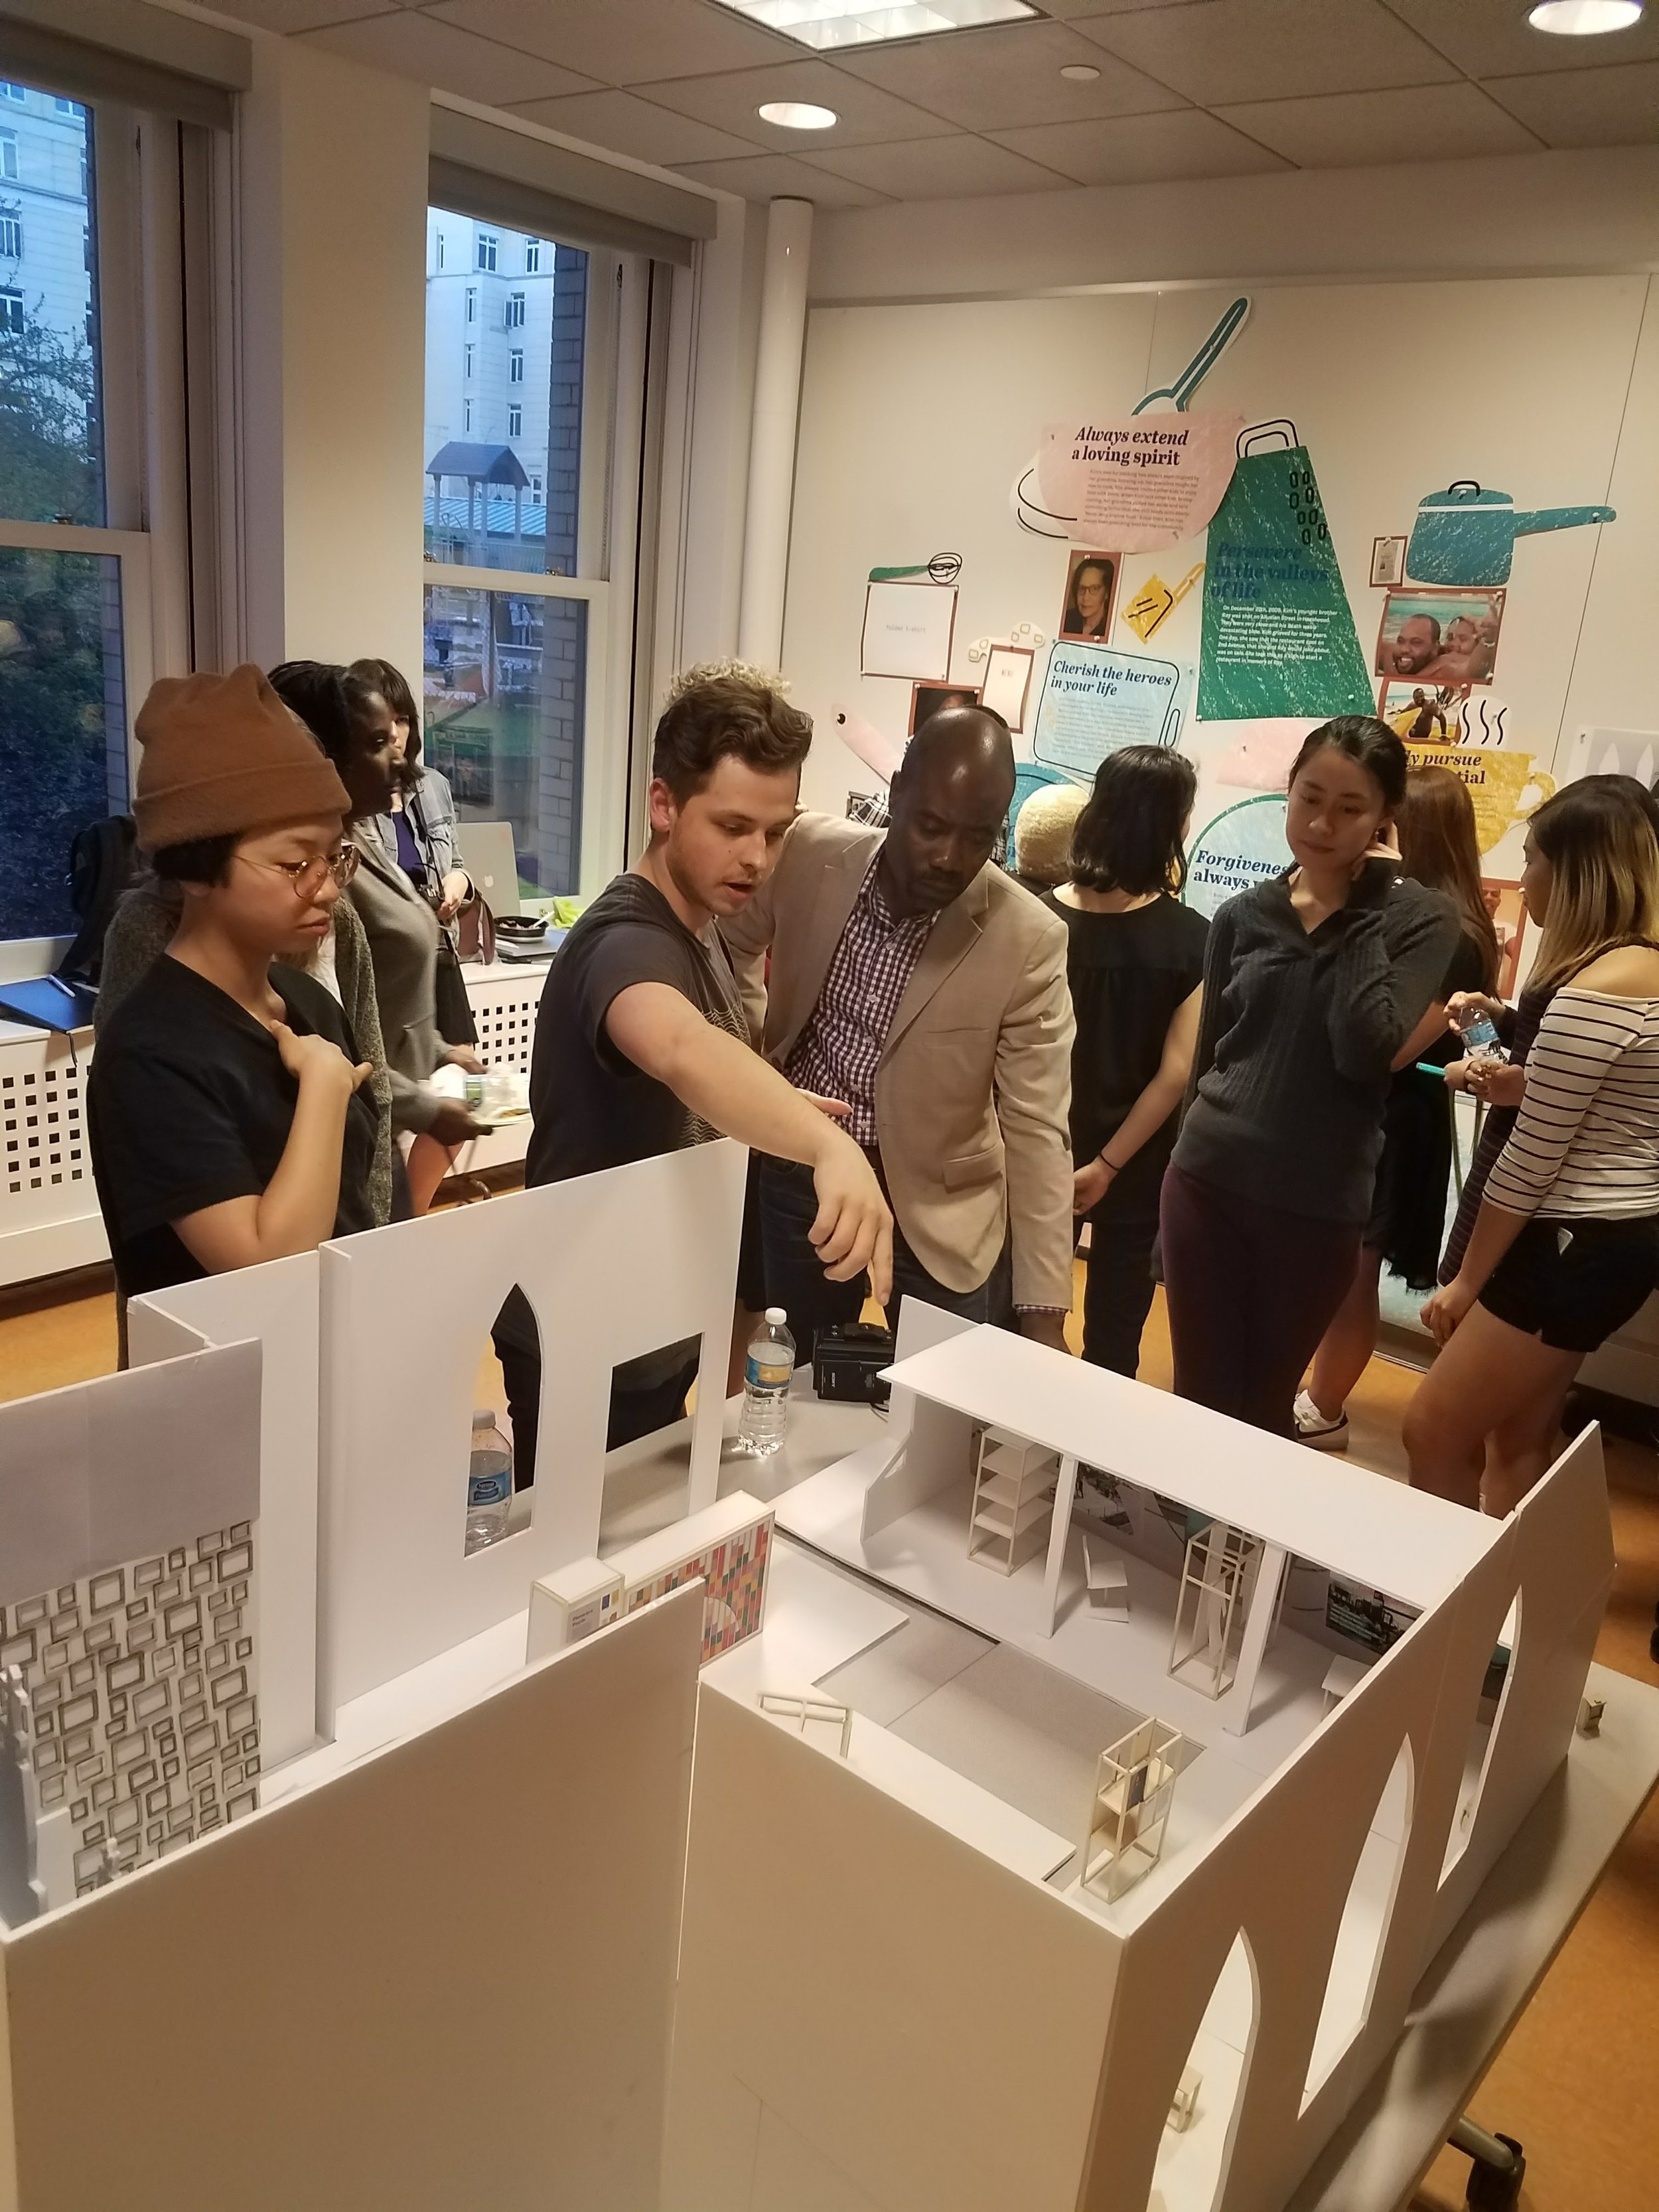 Discussing the content and values of the exhibition - As the students designed the exhibition themes and pieces, we invited the community members to co-design with us and share their feedback. The process of including the members in creating the exhibit was another way of implementing empowerment and sense of belonging for the participants. Through continuously conducting workshops, interviews, and discussions throughout the design process, the final work came to be genuinely centered around the Hazelwood community.